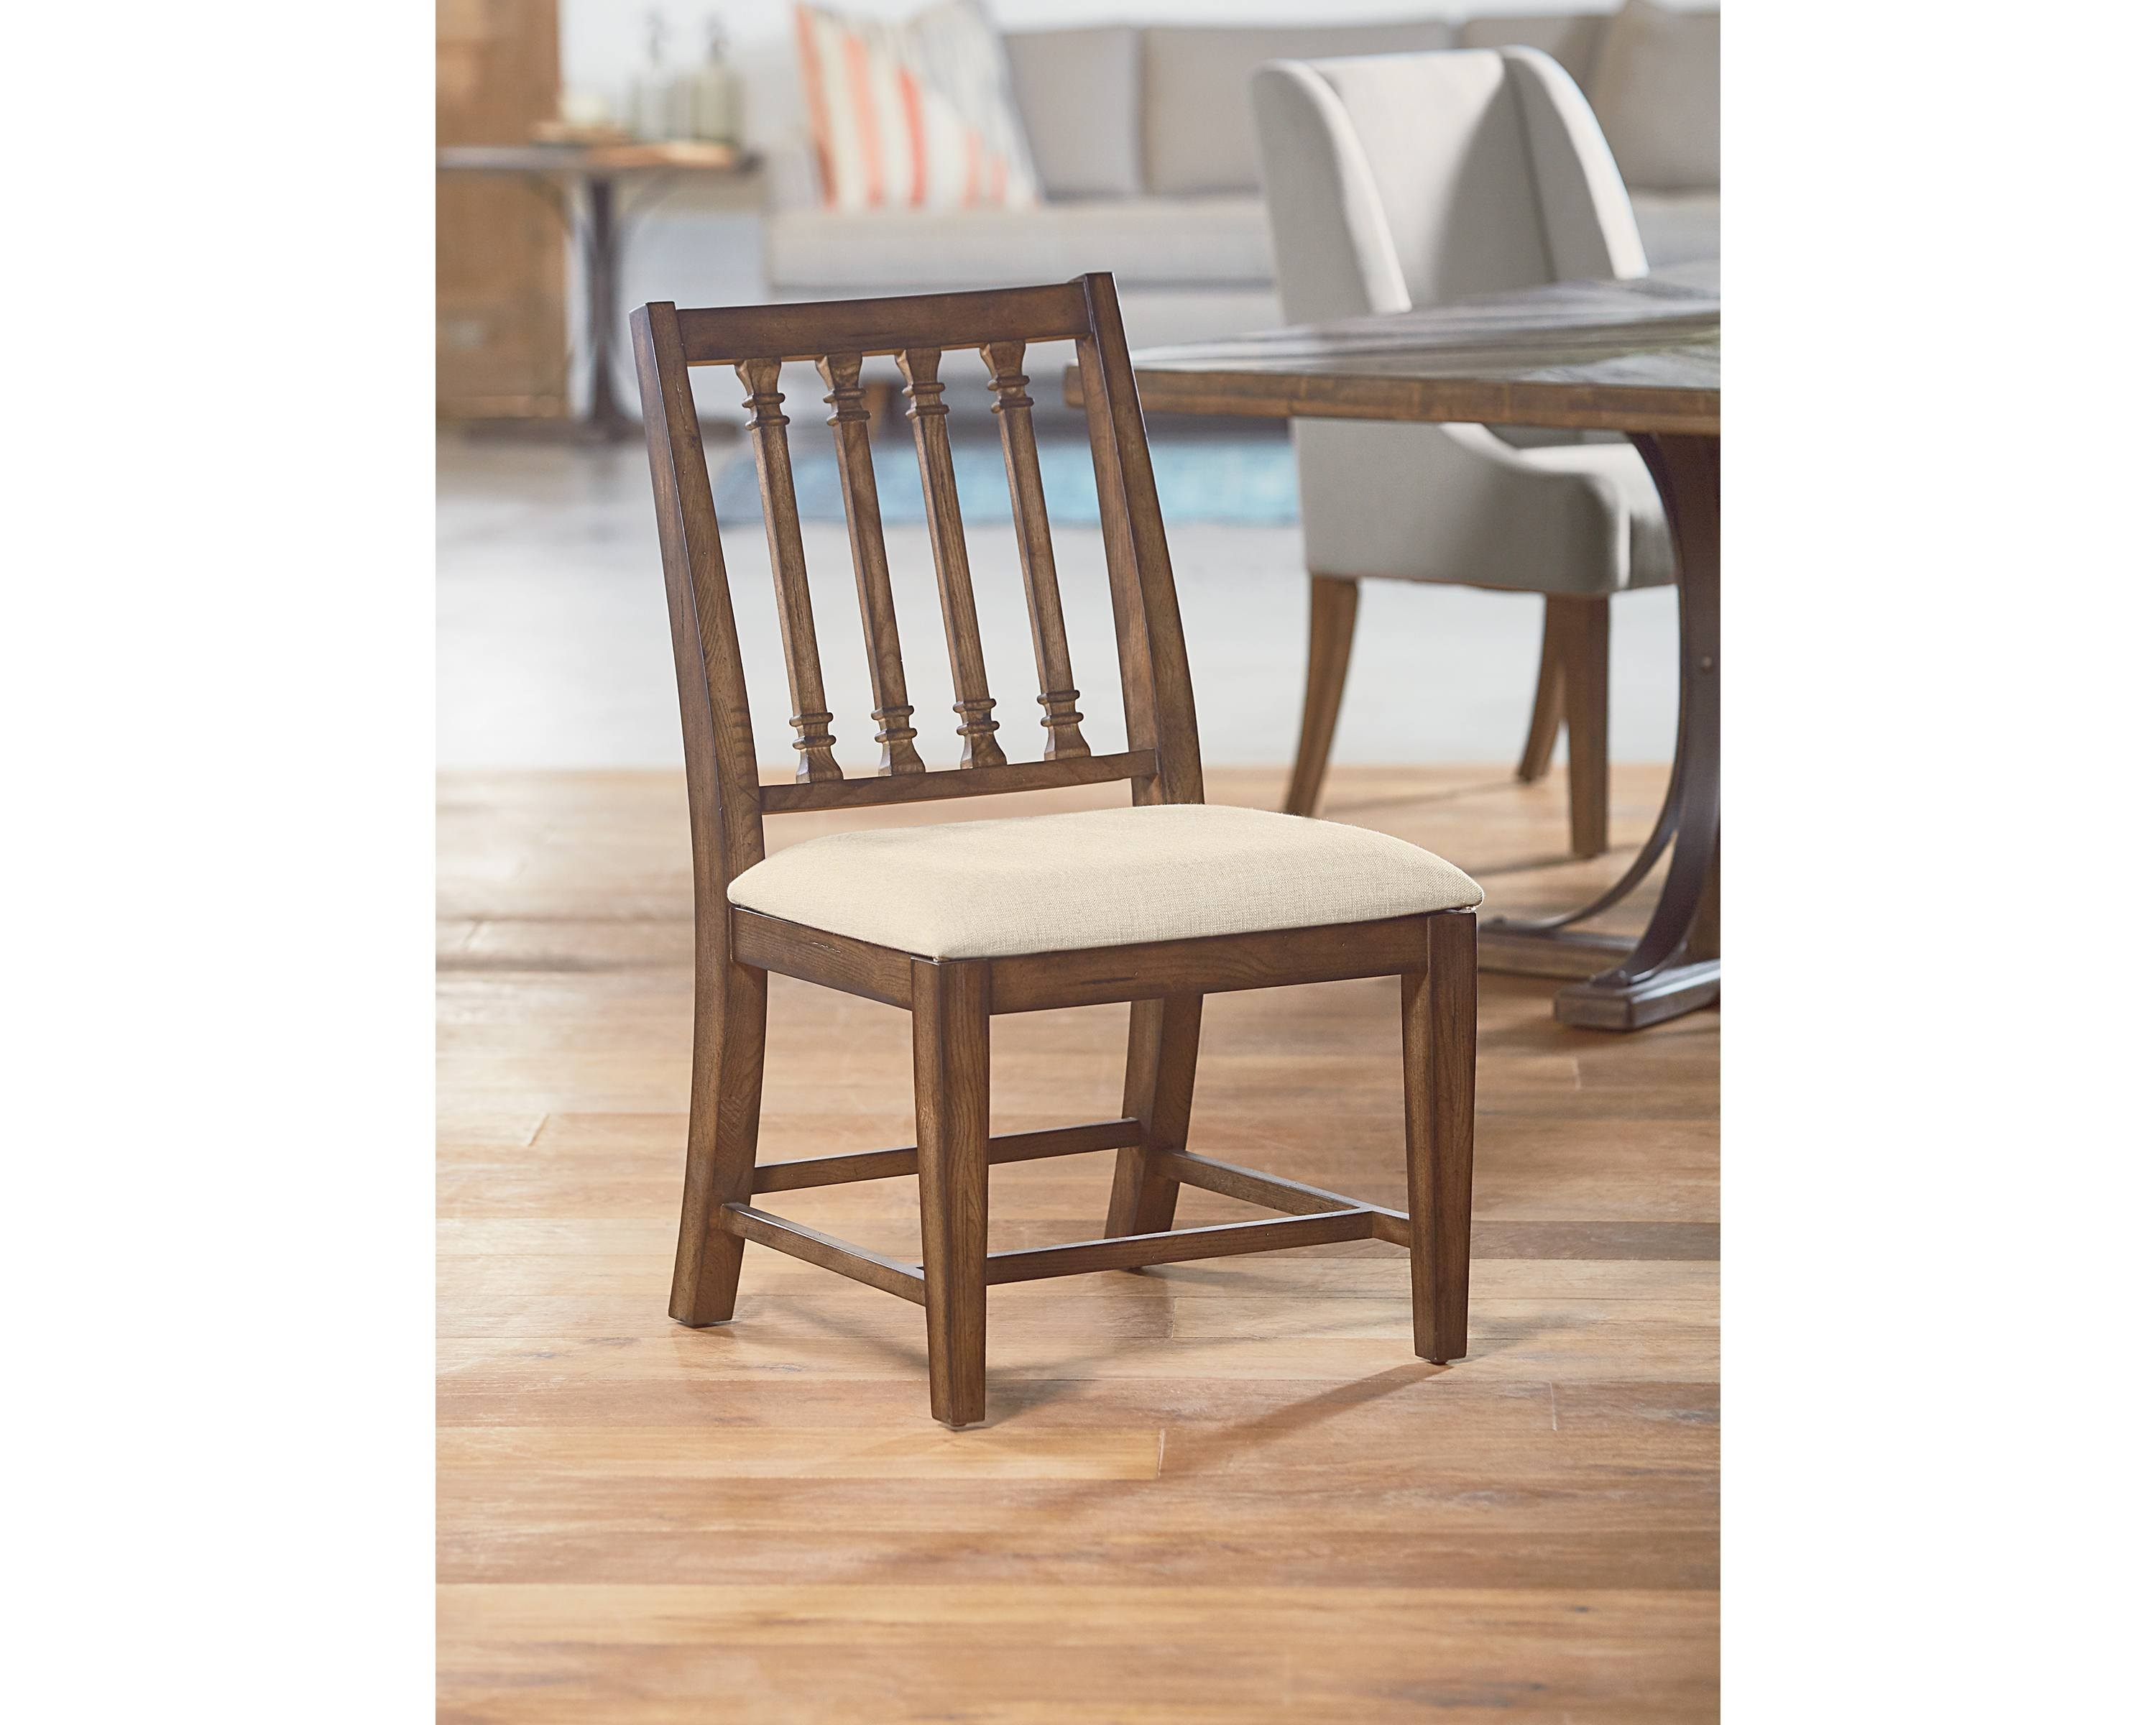 Most Current Magnolia Home Revival Side Chairs Throughout Revival Side Chair – Magnolia Home (View 11 of 20)